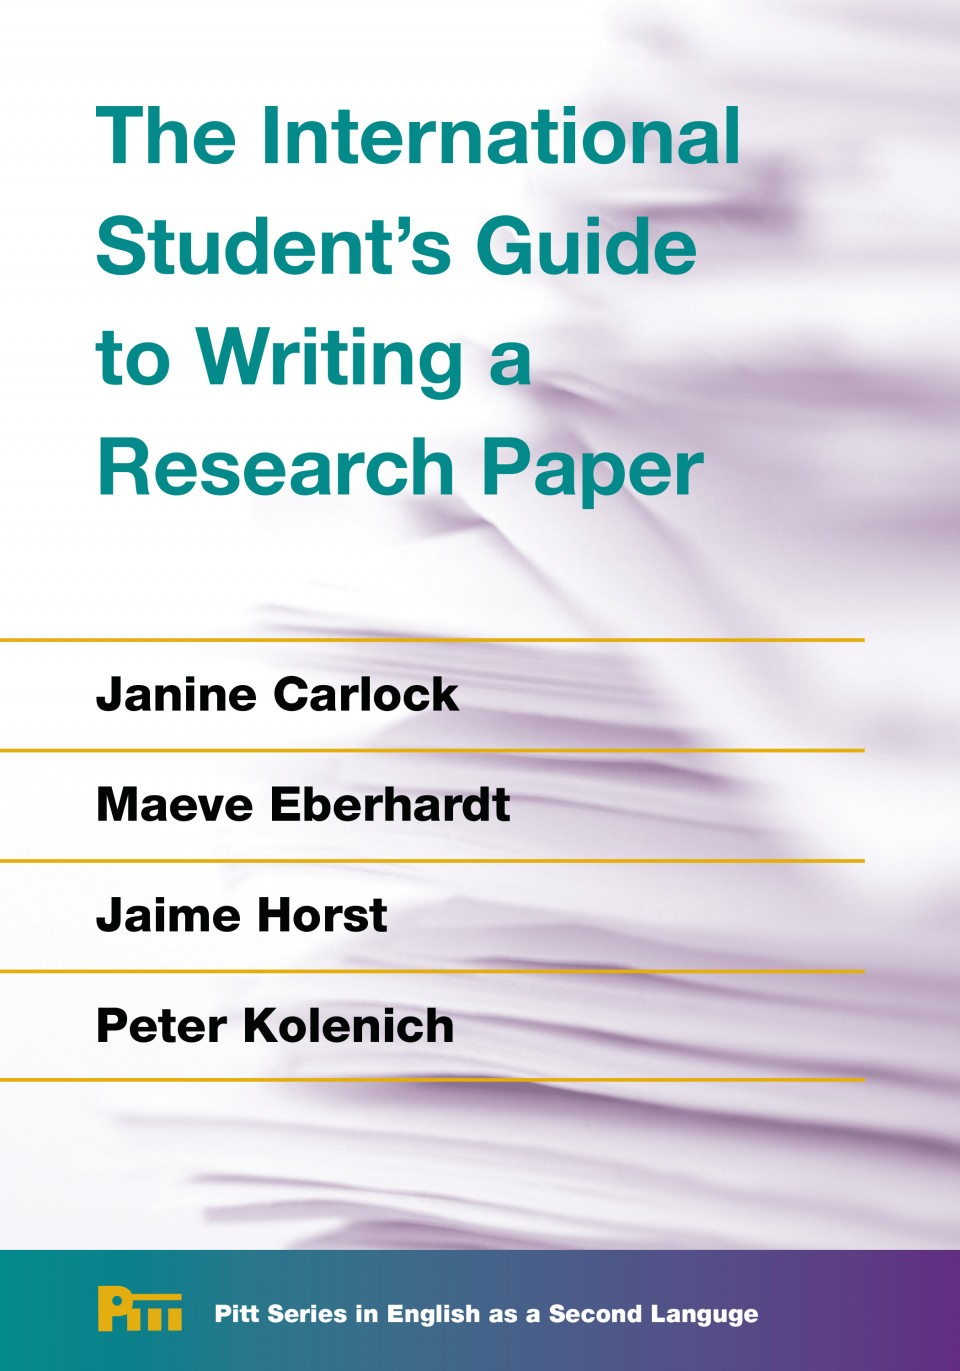 012 Writing Of Research Paper Fascinating Sample Introduction Steps A Pdf 960